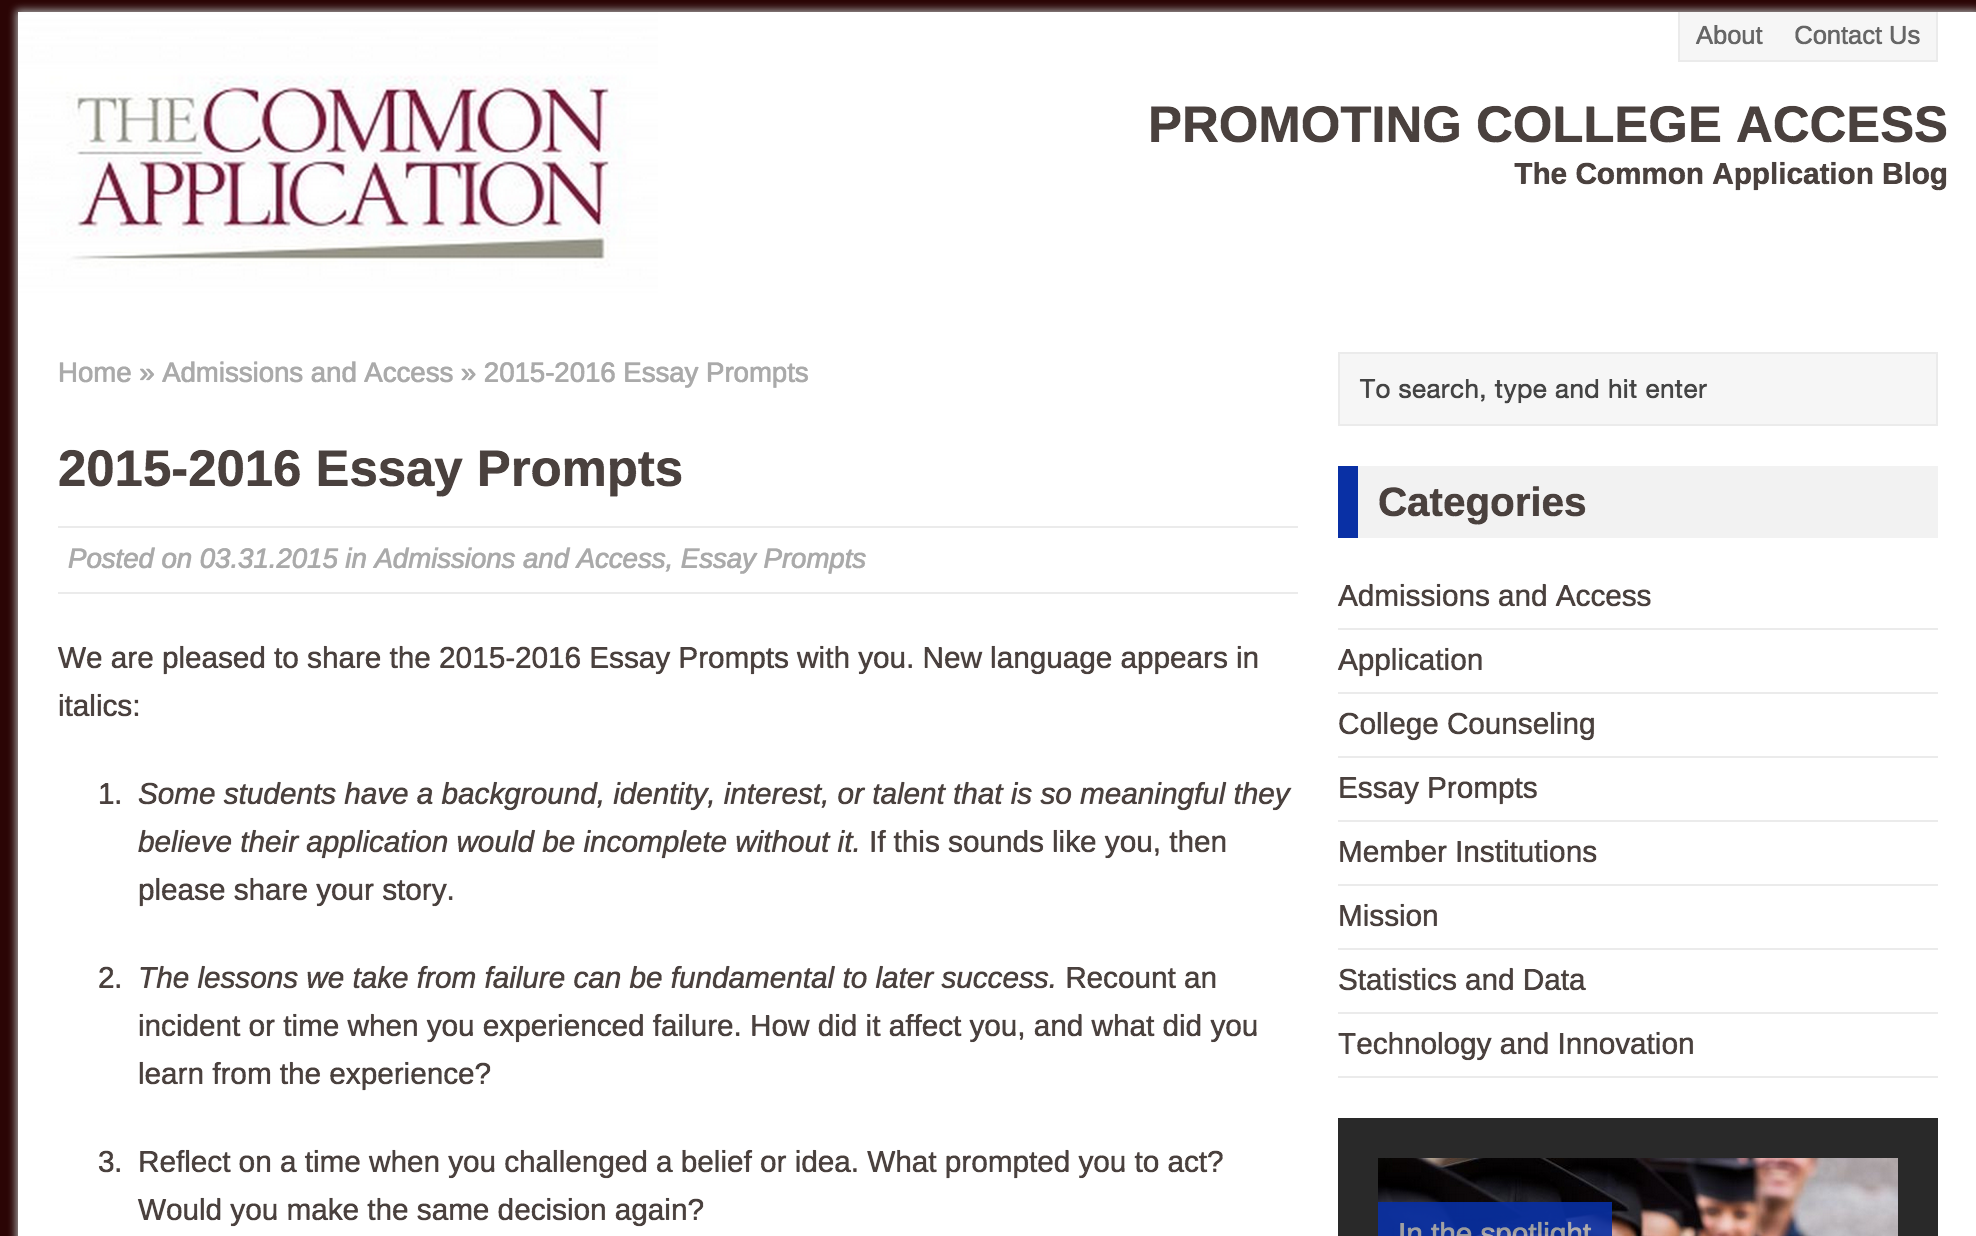 002 Common App Essay Topics Screen Shot At Pm Impressive Samples Topic 1 Ideas 2017 Full